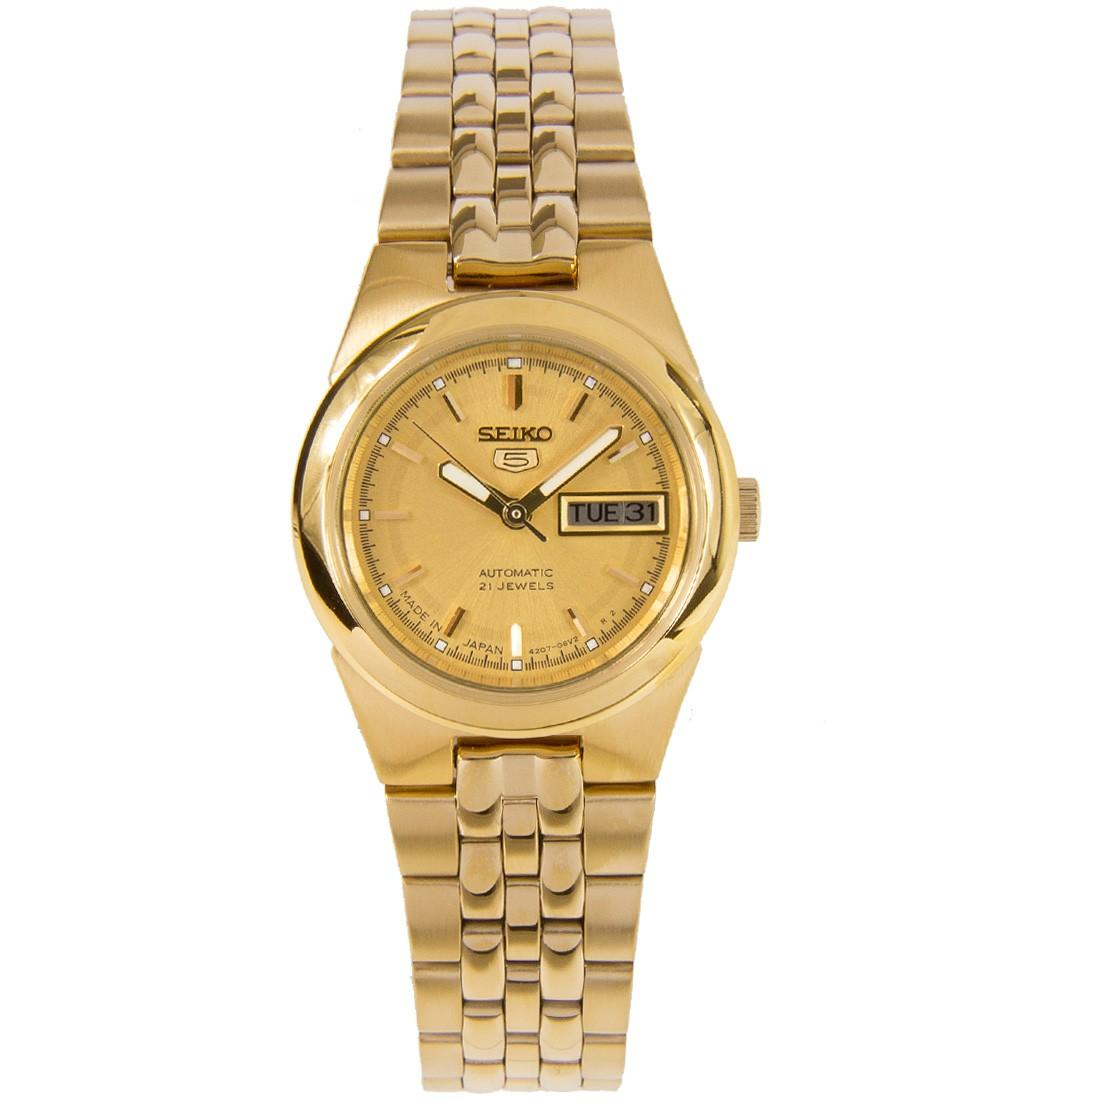 98e9e287c40 Buy Seiko 5 Watches